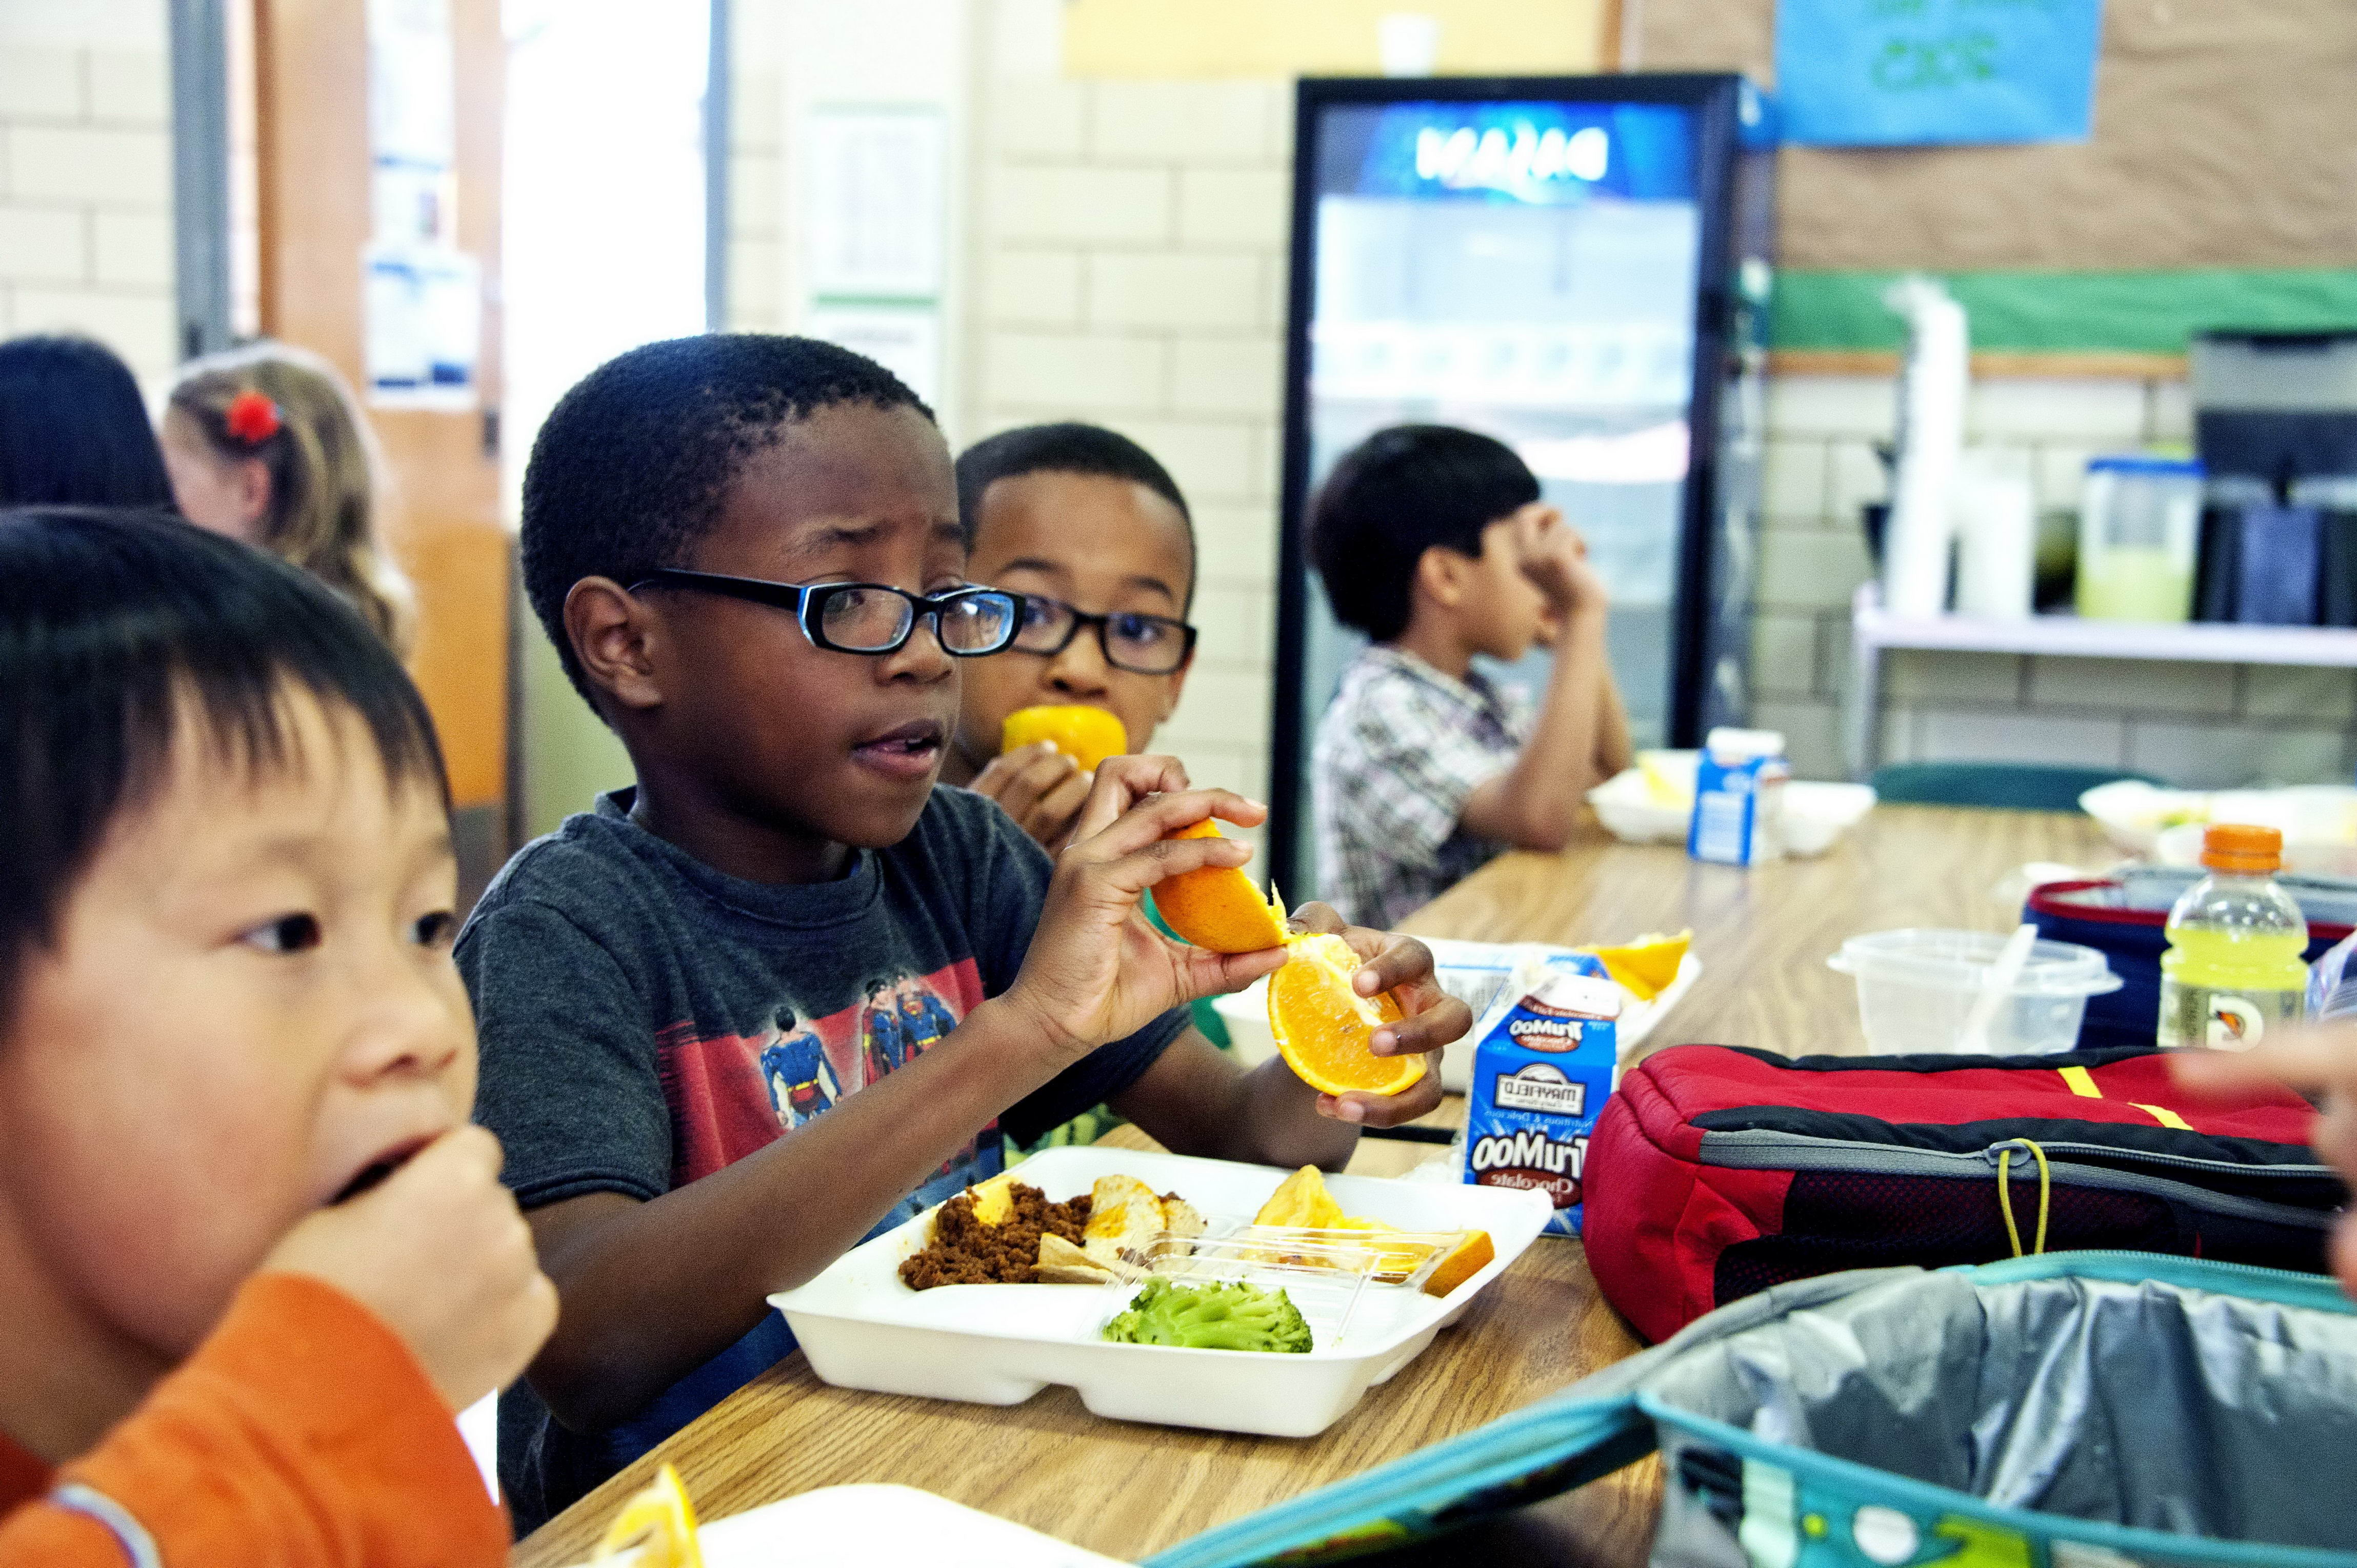 children eating lunch in school cafeteria